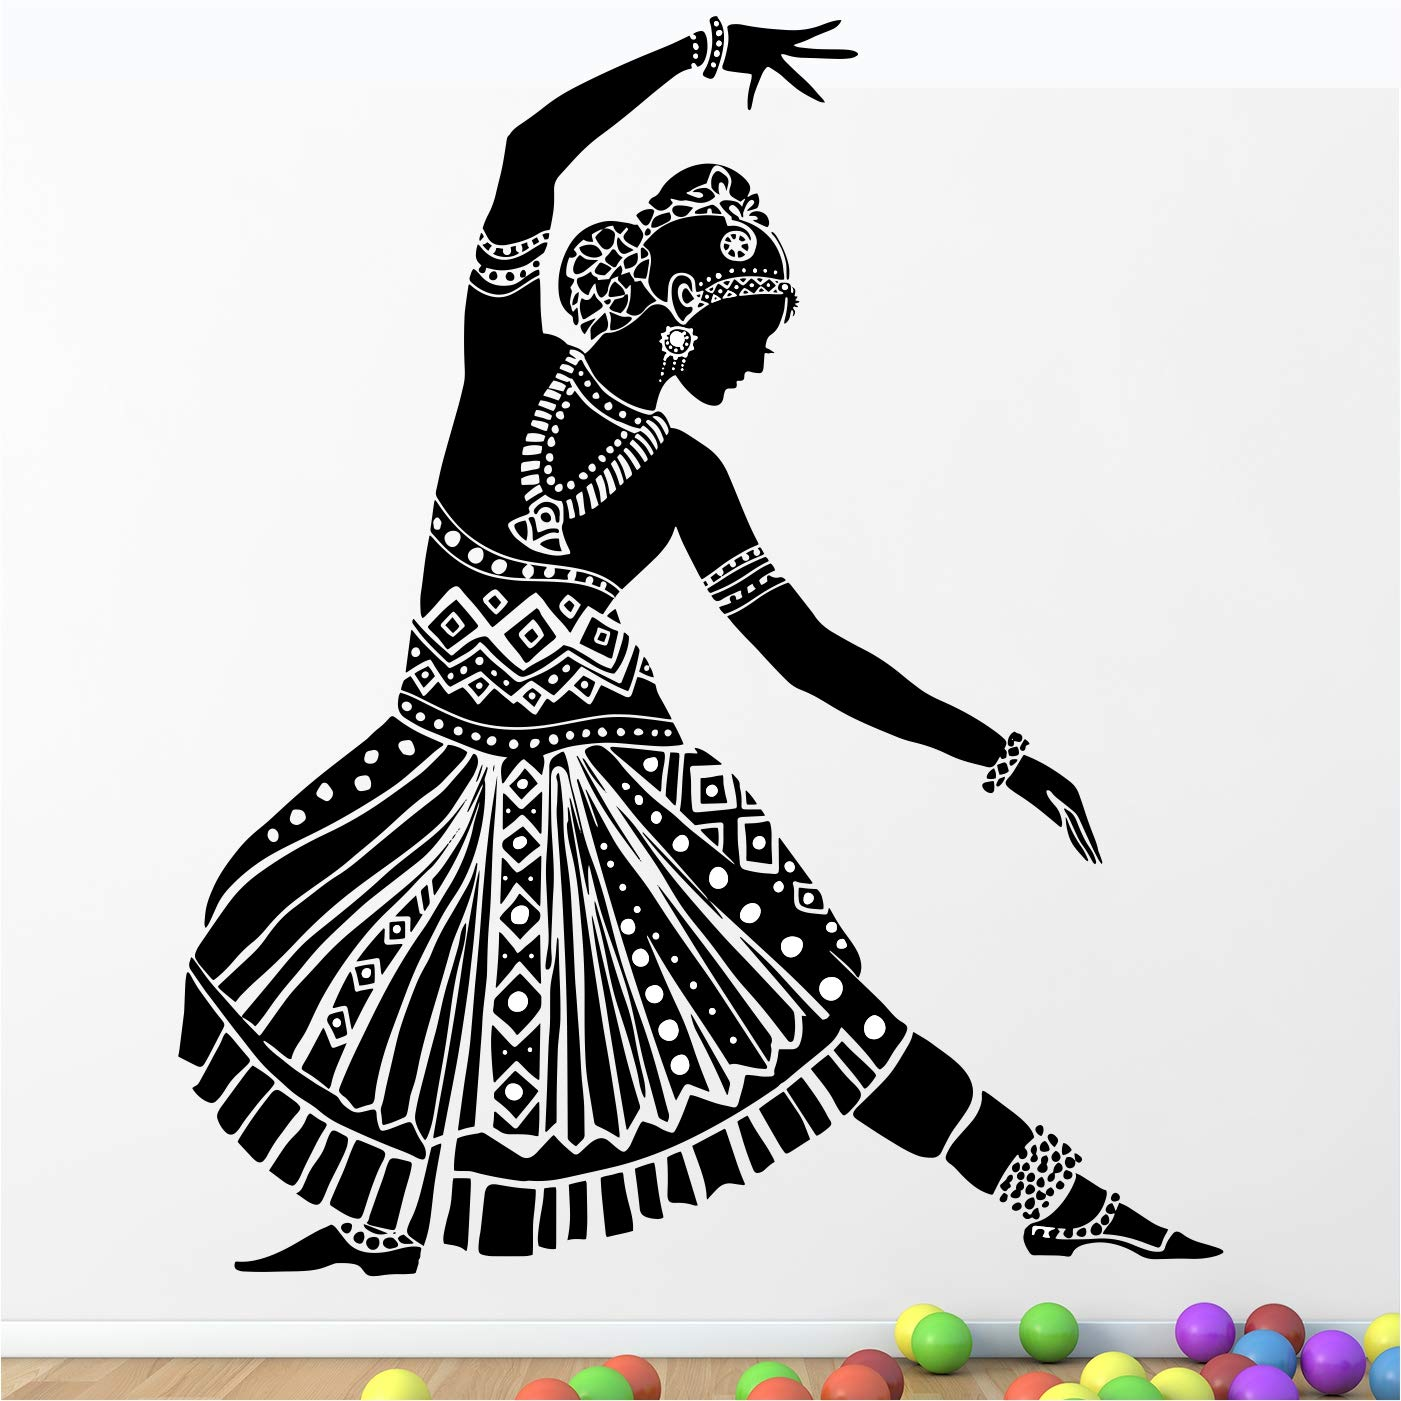 Buy Stickme Beautiful Indian Classical Dance Bharatanatyam Woman Dancer Creative Colorful Wall Sticker Sm819 Pvc Vinyl 100cm X 80 Cm Online At Low Prices In India Amazon In